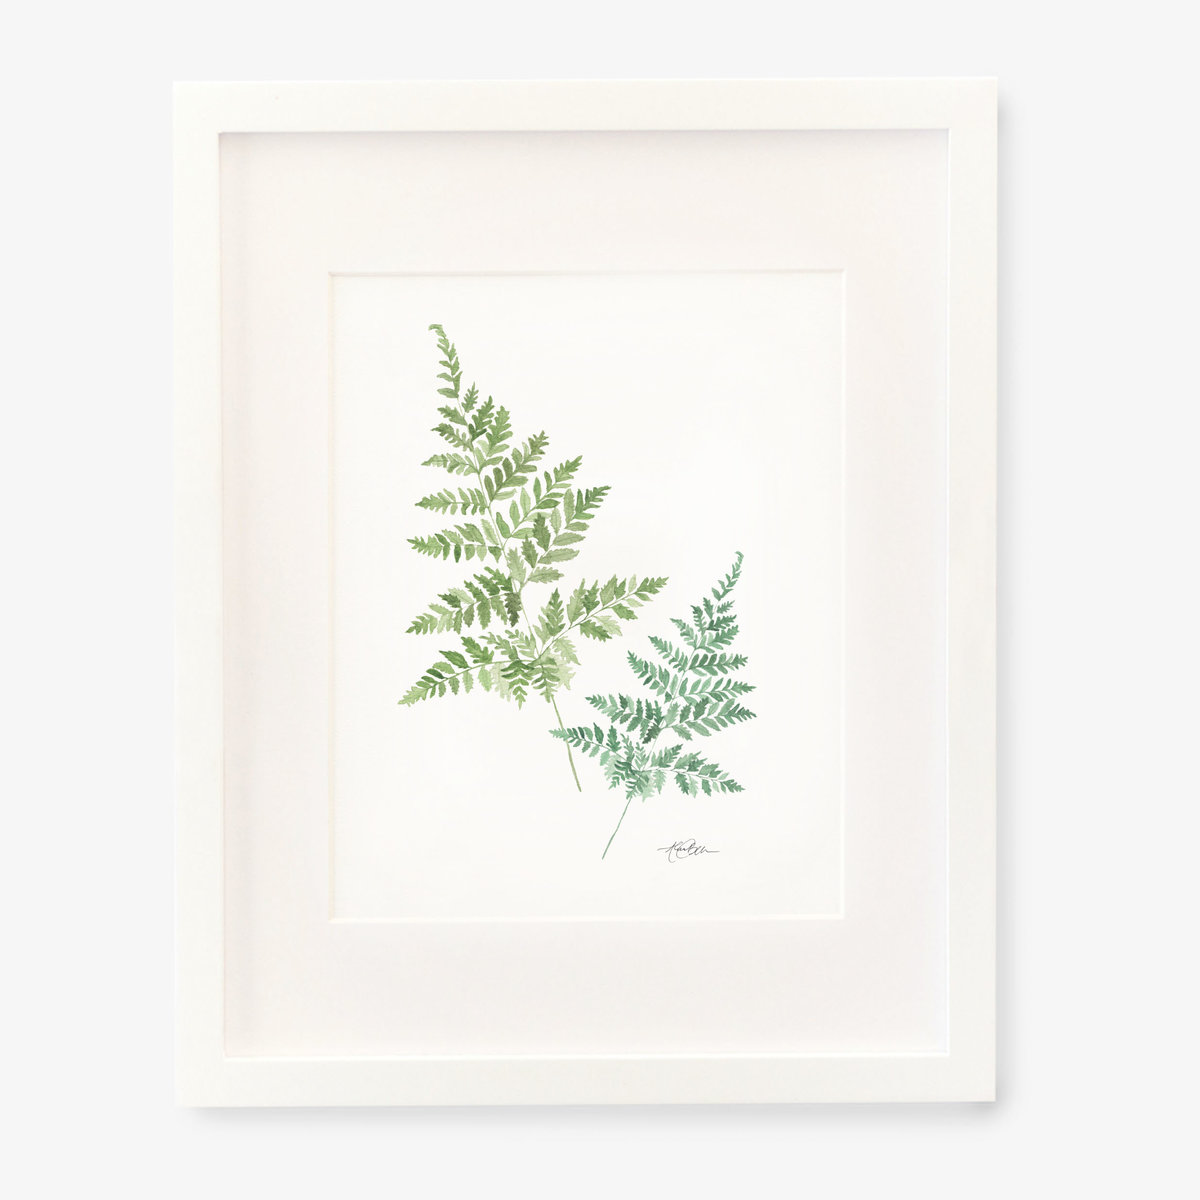 ferns_8x10_square